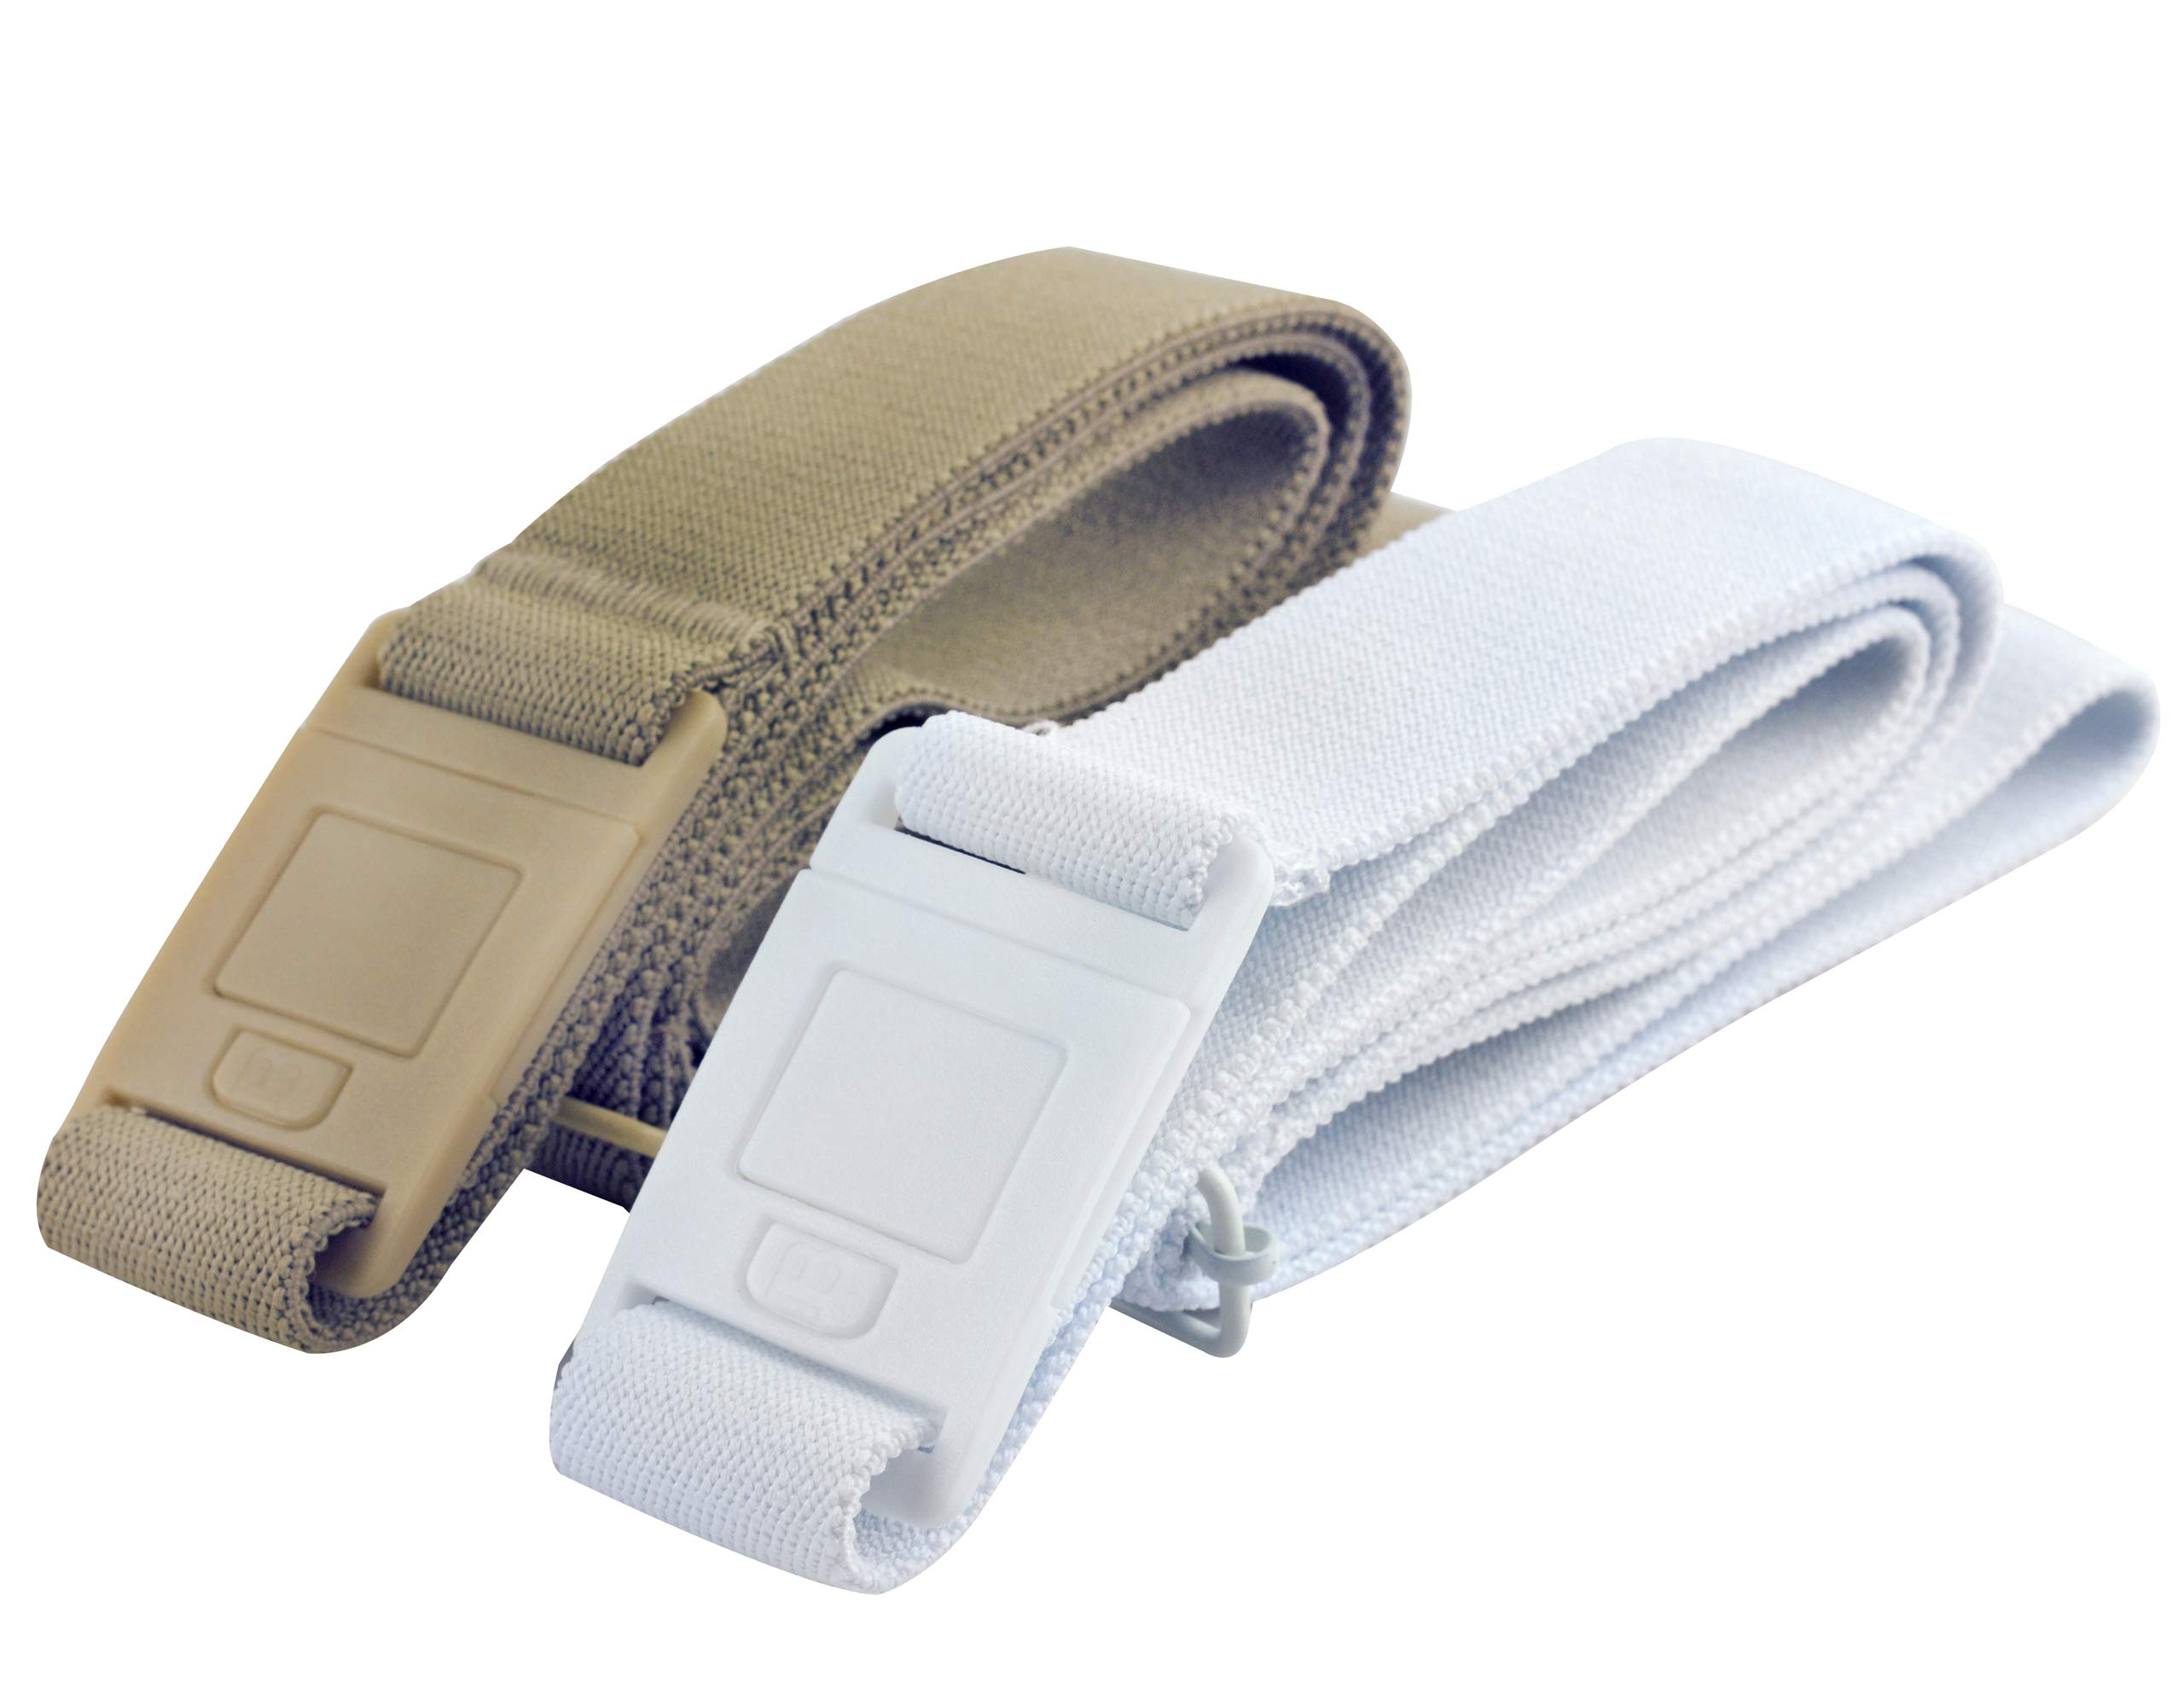 Beltaway SQUARE Adjustable Stretch Belt With No Show Square Buckle 2PK Sand/White One Size